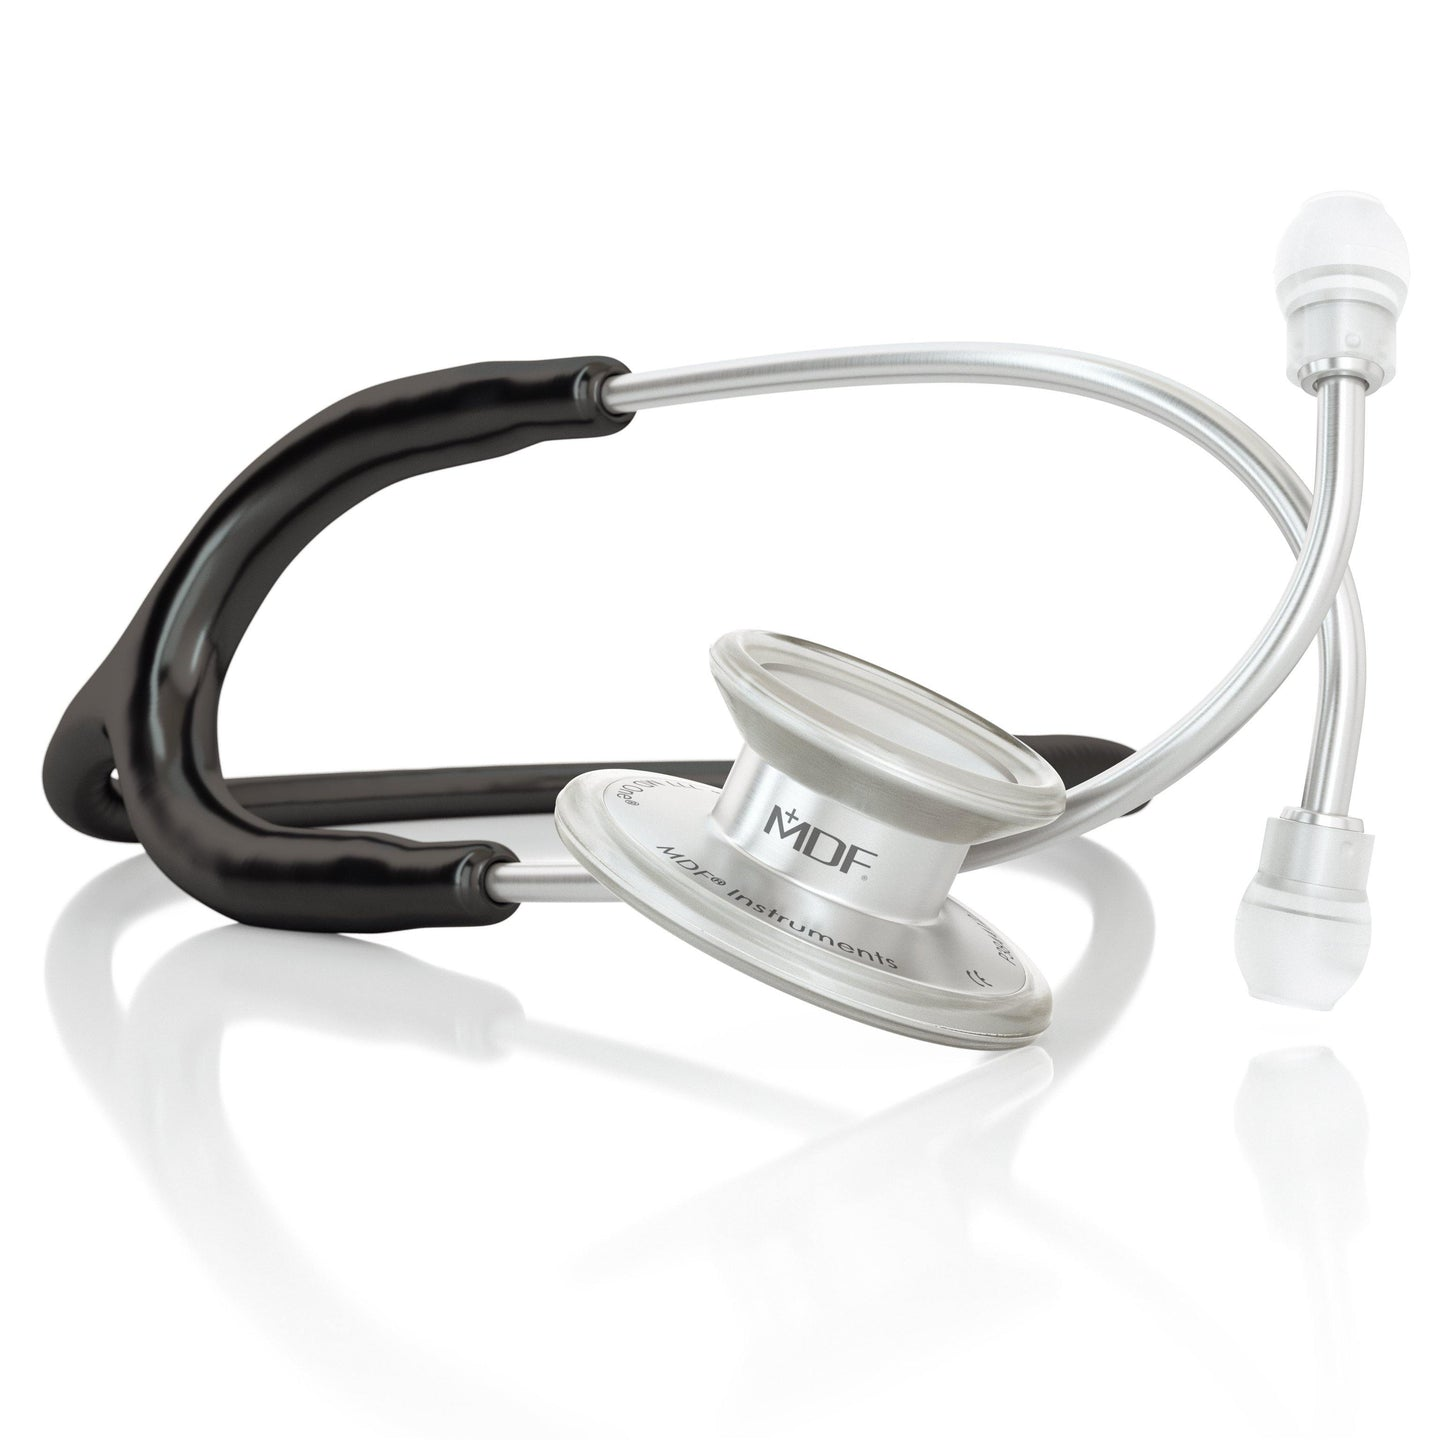 MDFå¨ MD Oneå¨ Adult Stainless Steel Stethoscope - Silver - Black